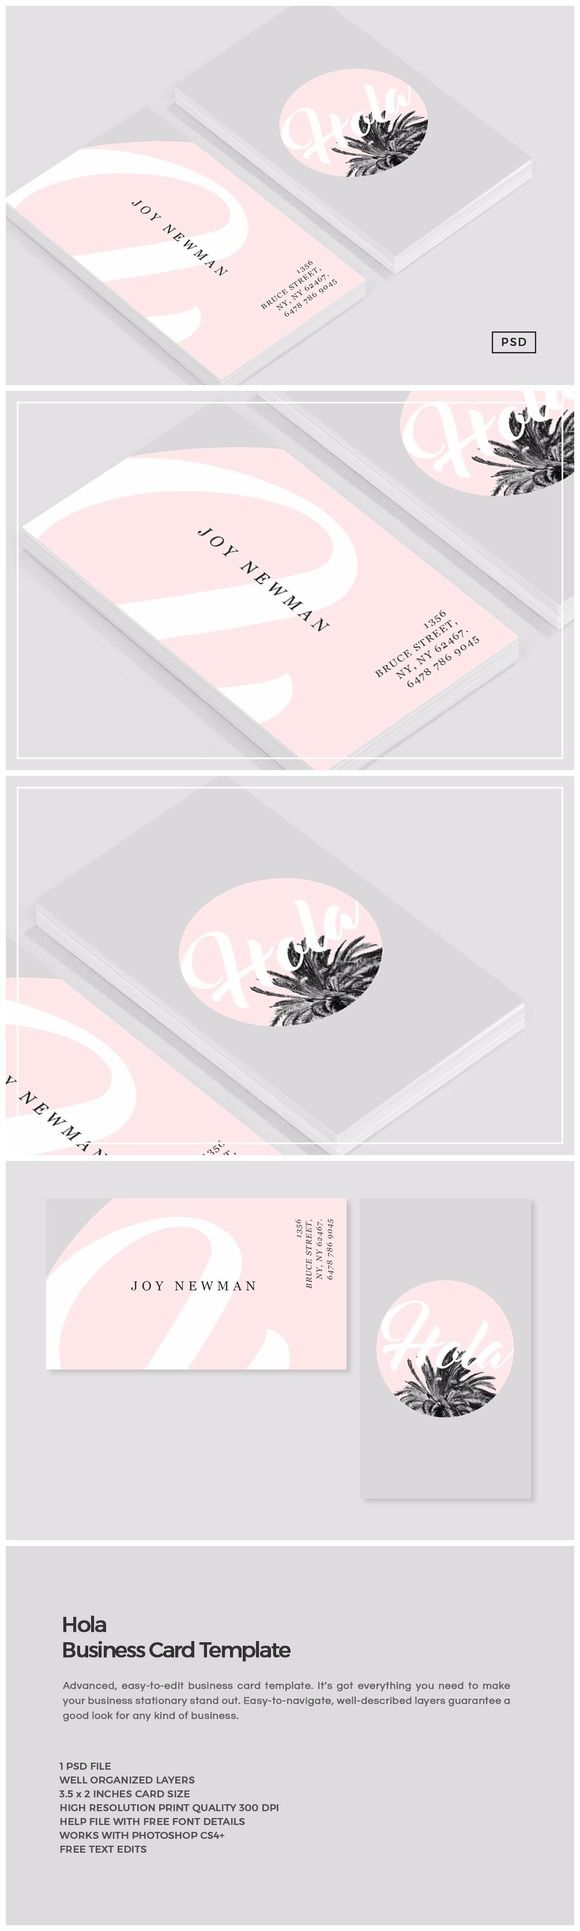 best 25 free printable business cards ideas on pinterest printable business cards free business card design and free business card templates